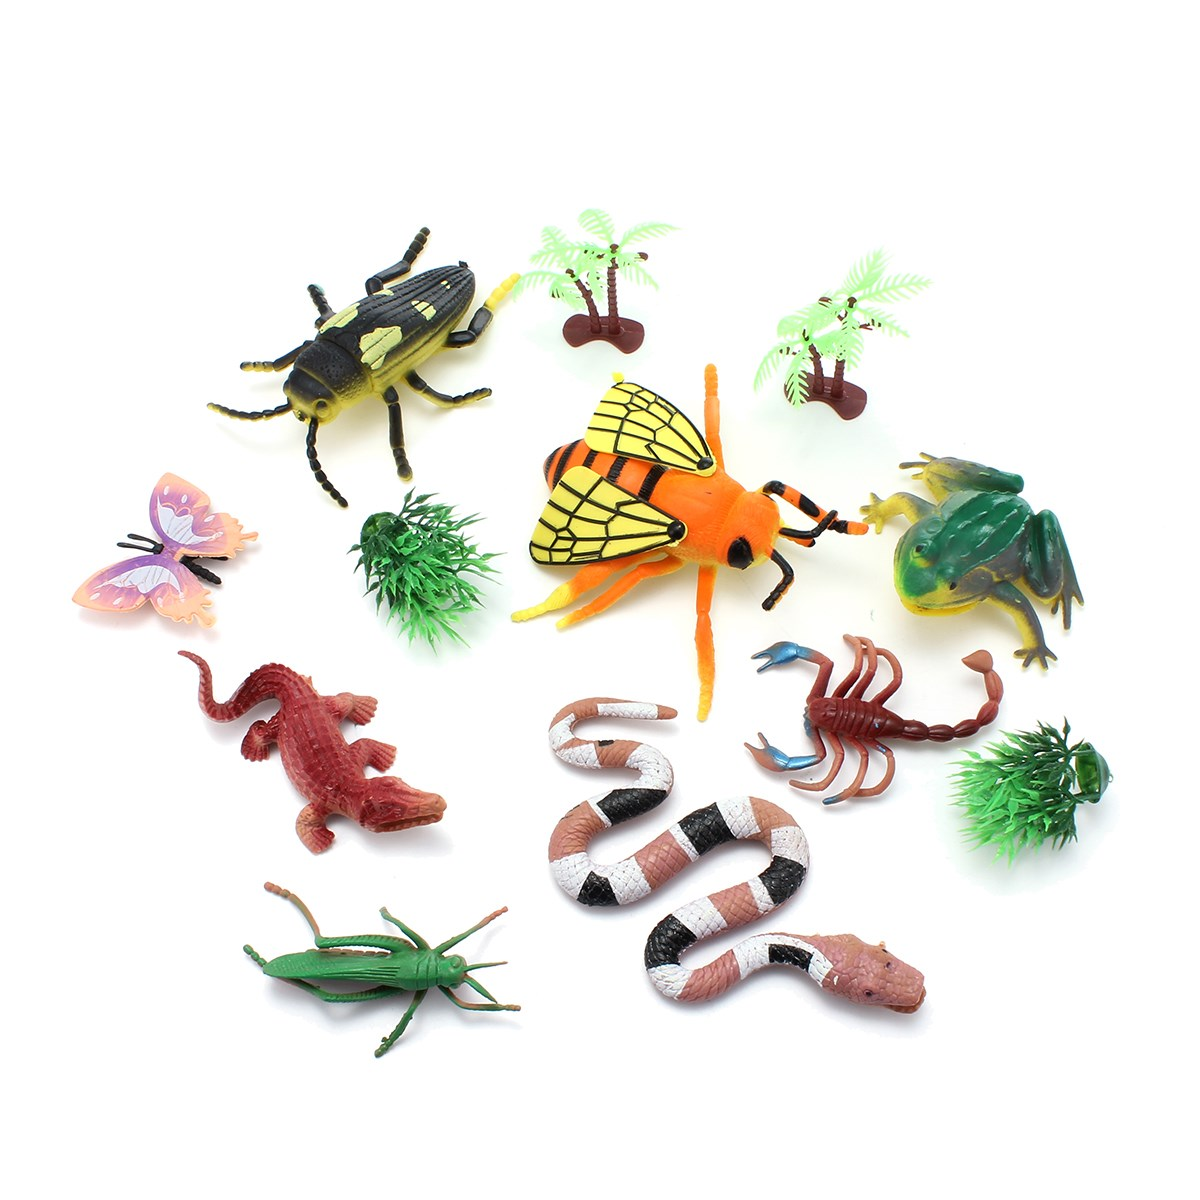 8pcs Mini Insect Toy Model Set Snake Grasshopper Butterfly Scorpion Hexapod  Decor Figures Model Set With Tree Model Sets-in Action & Toy Figures from